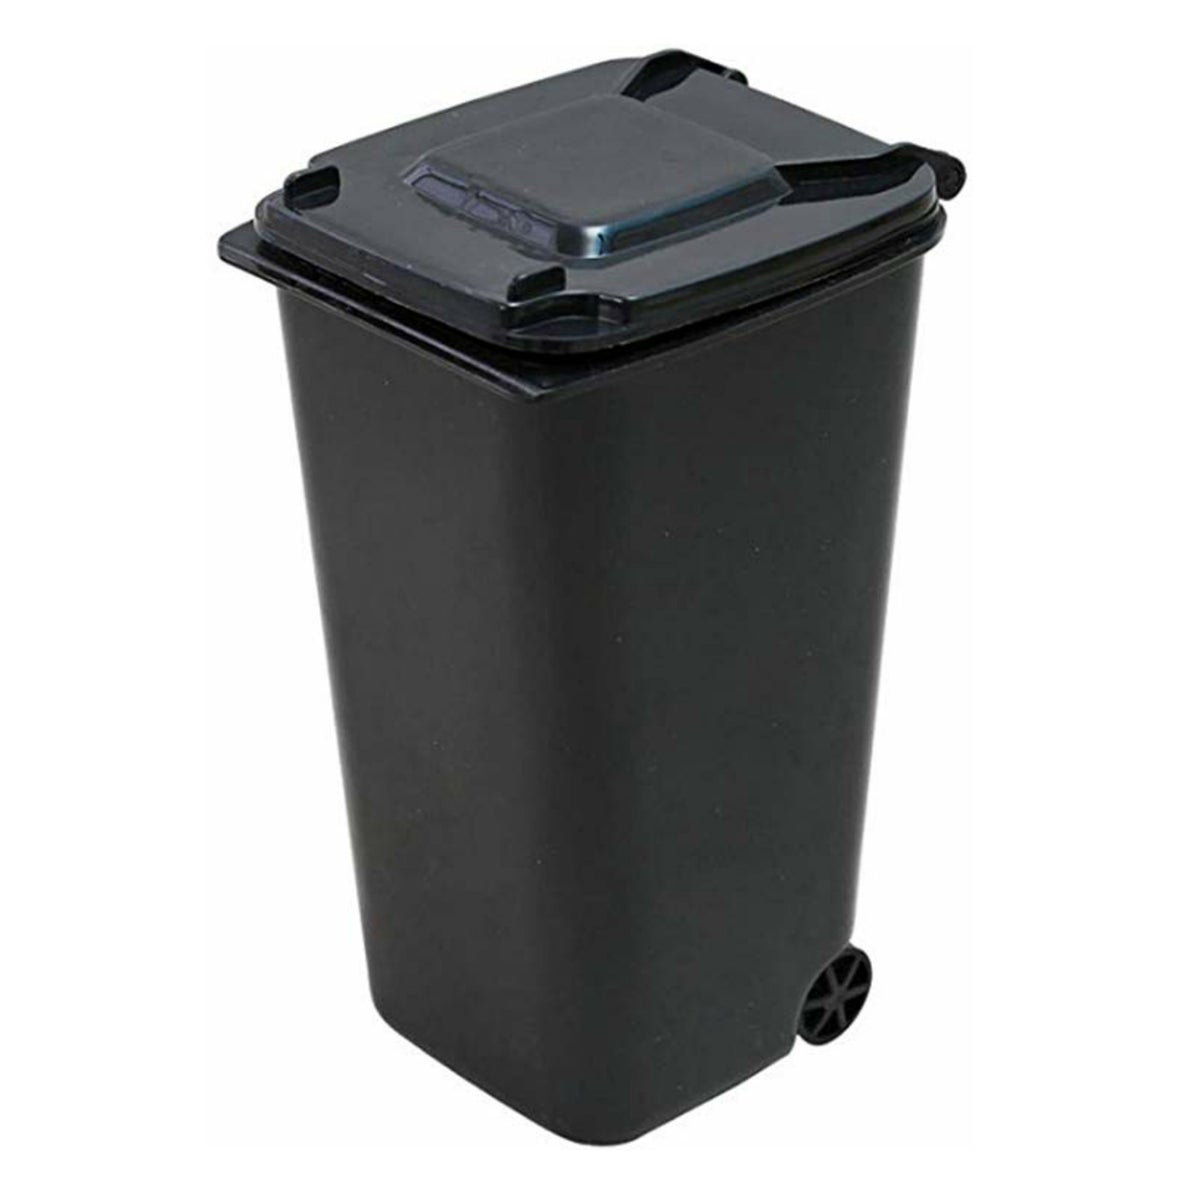 Image of Black Desktop Trash Bin